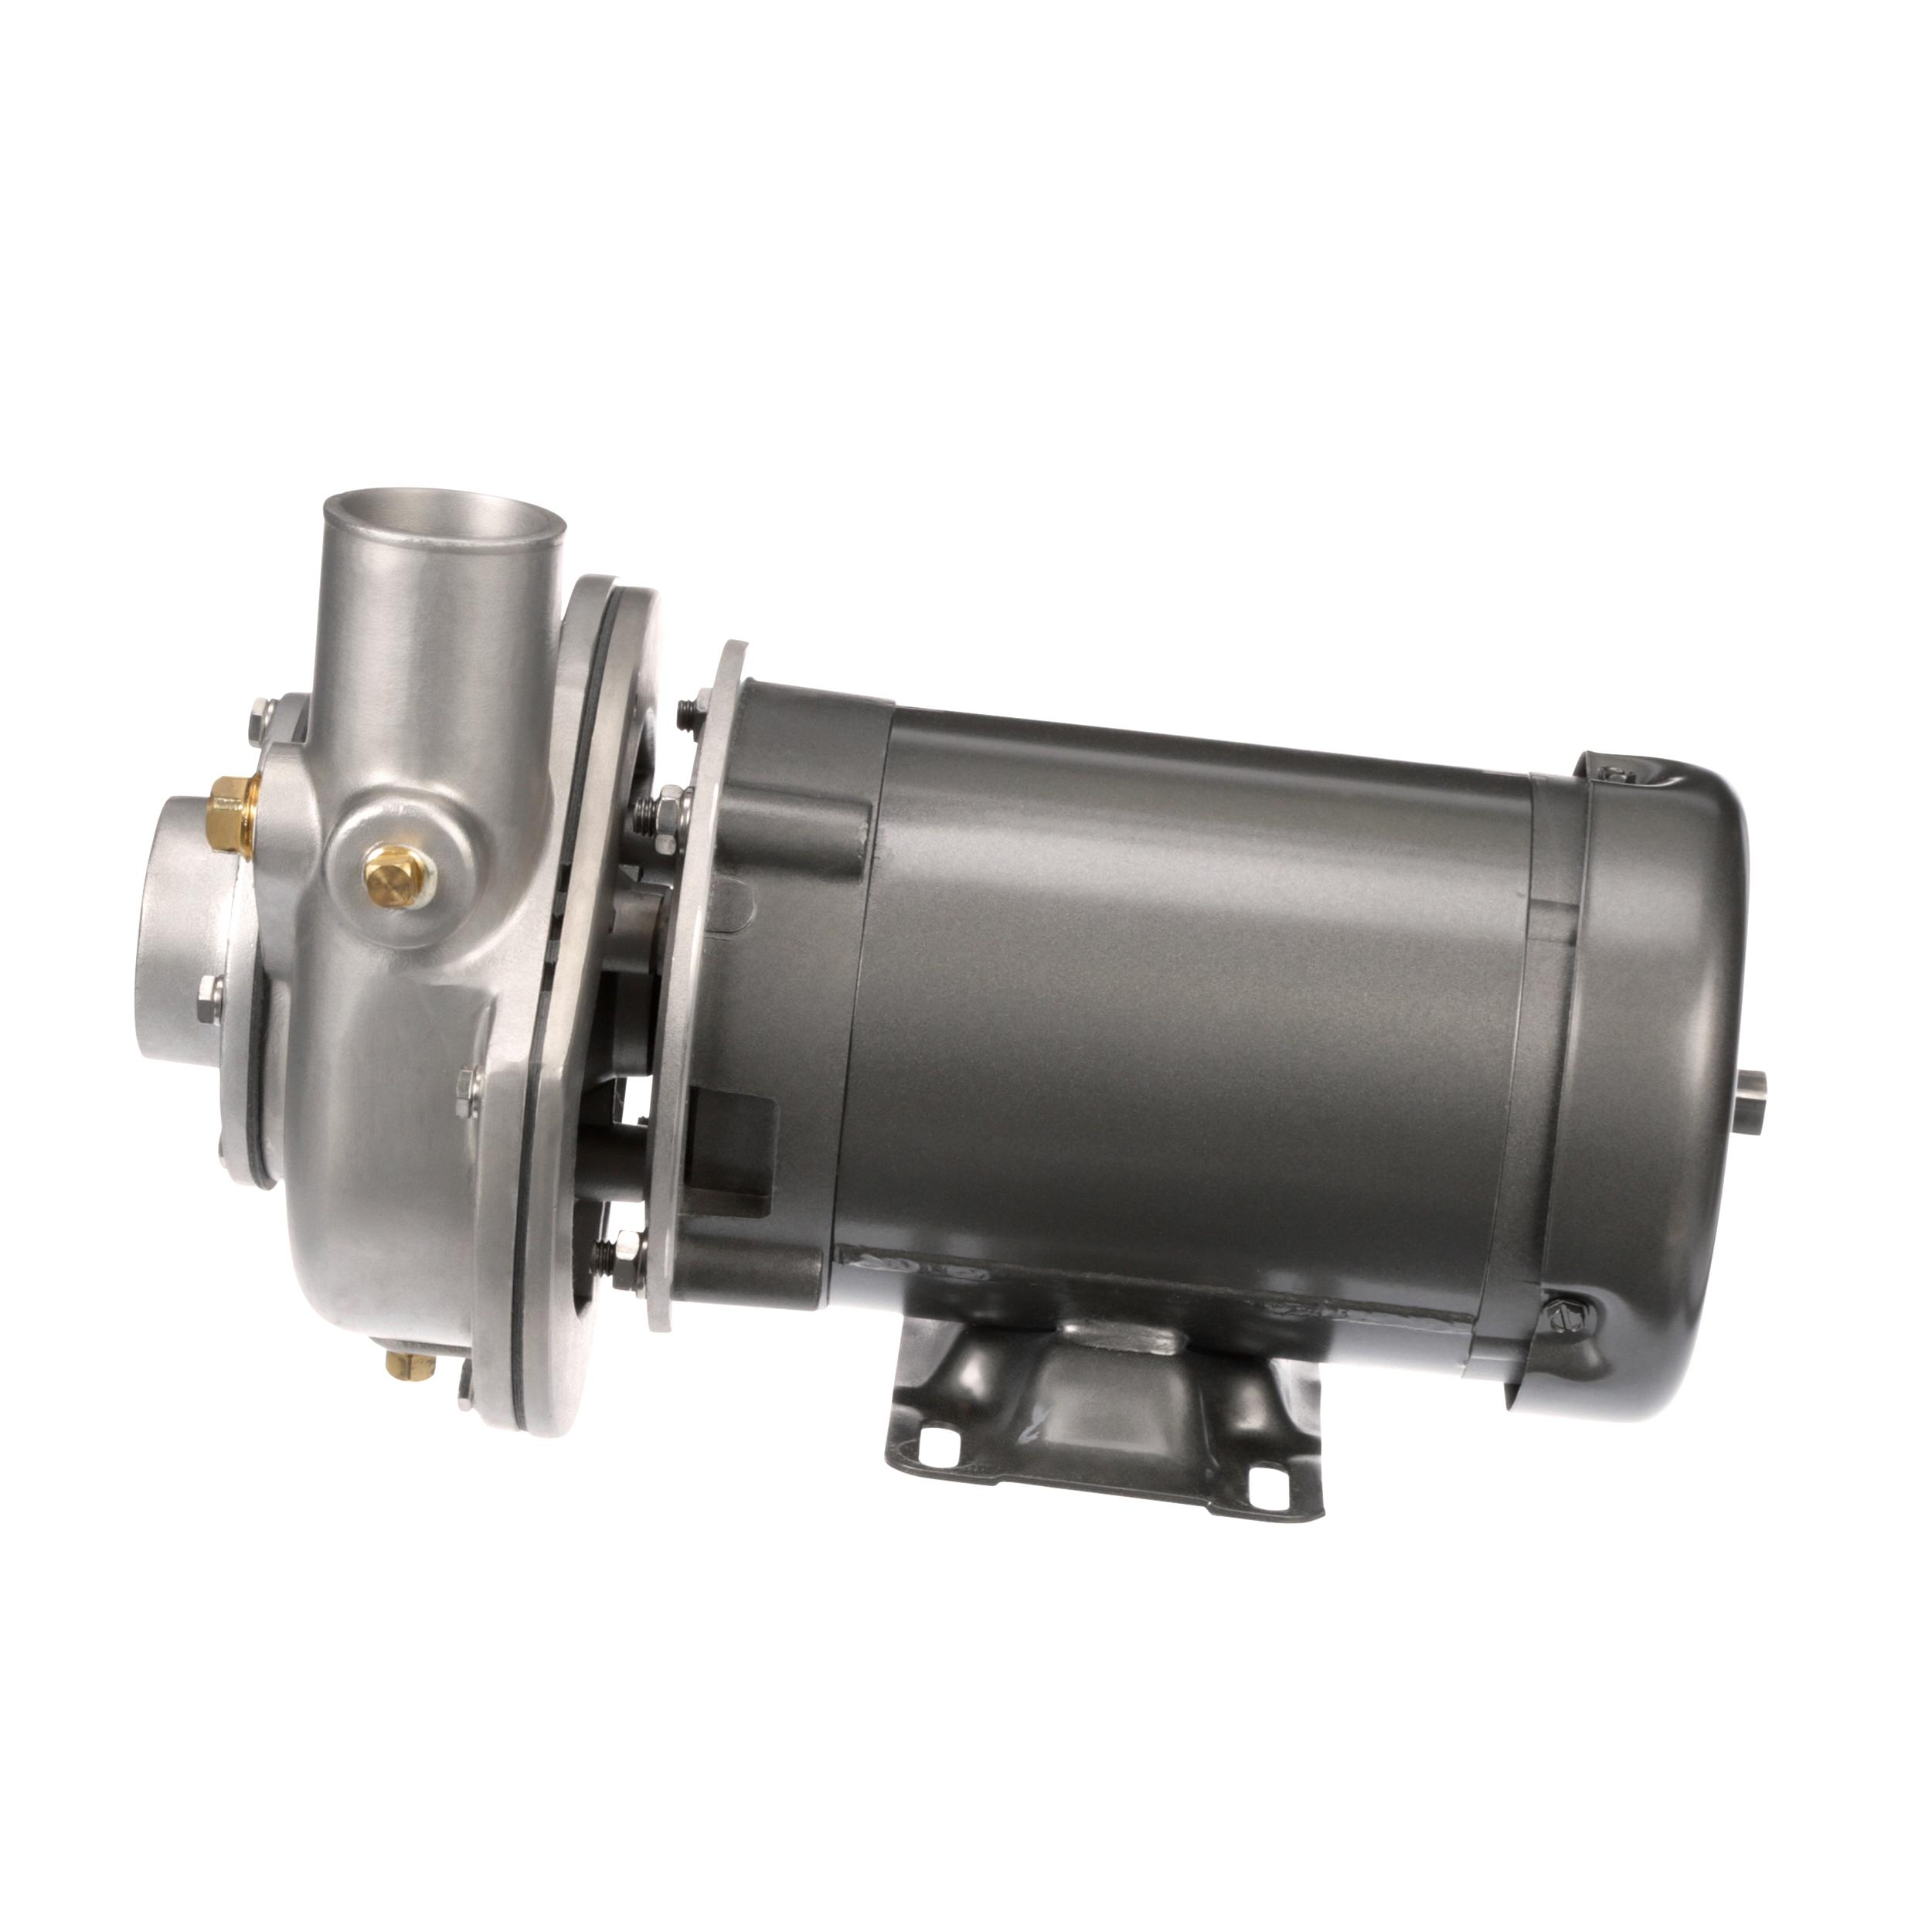 Champion Pump Motor Assy Part 405919